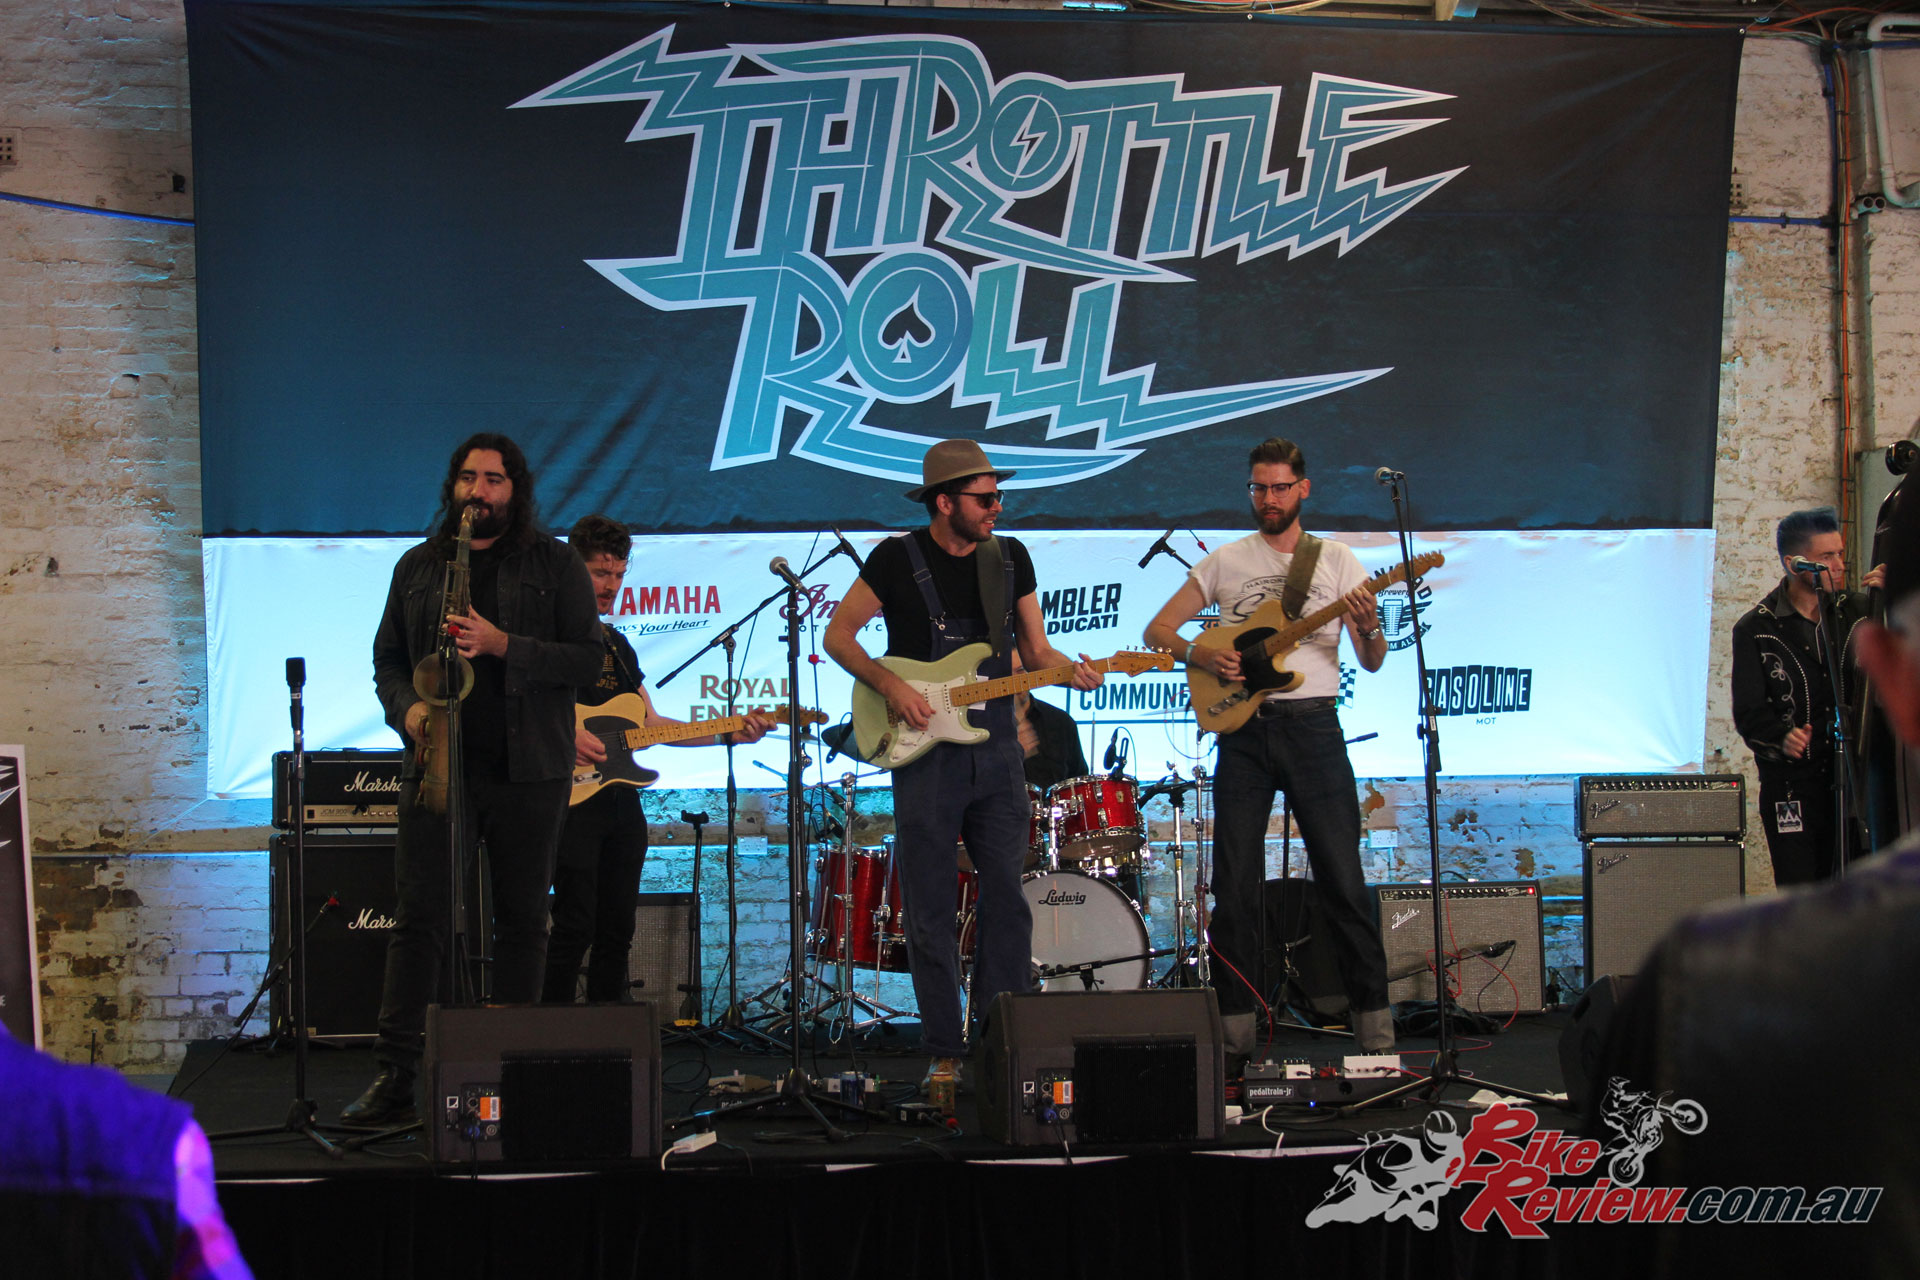 Throttle Roll 2019